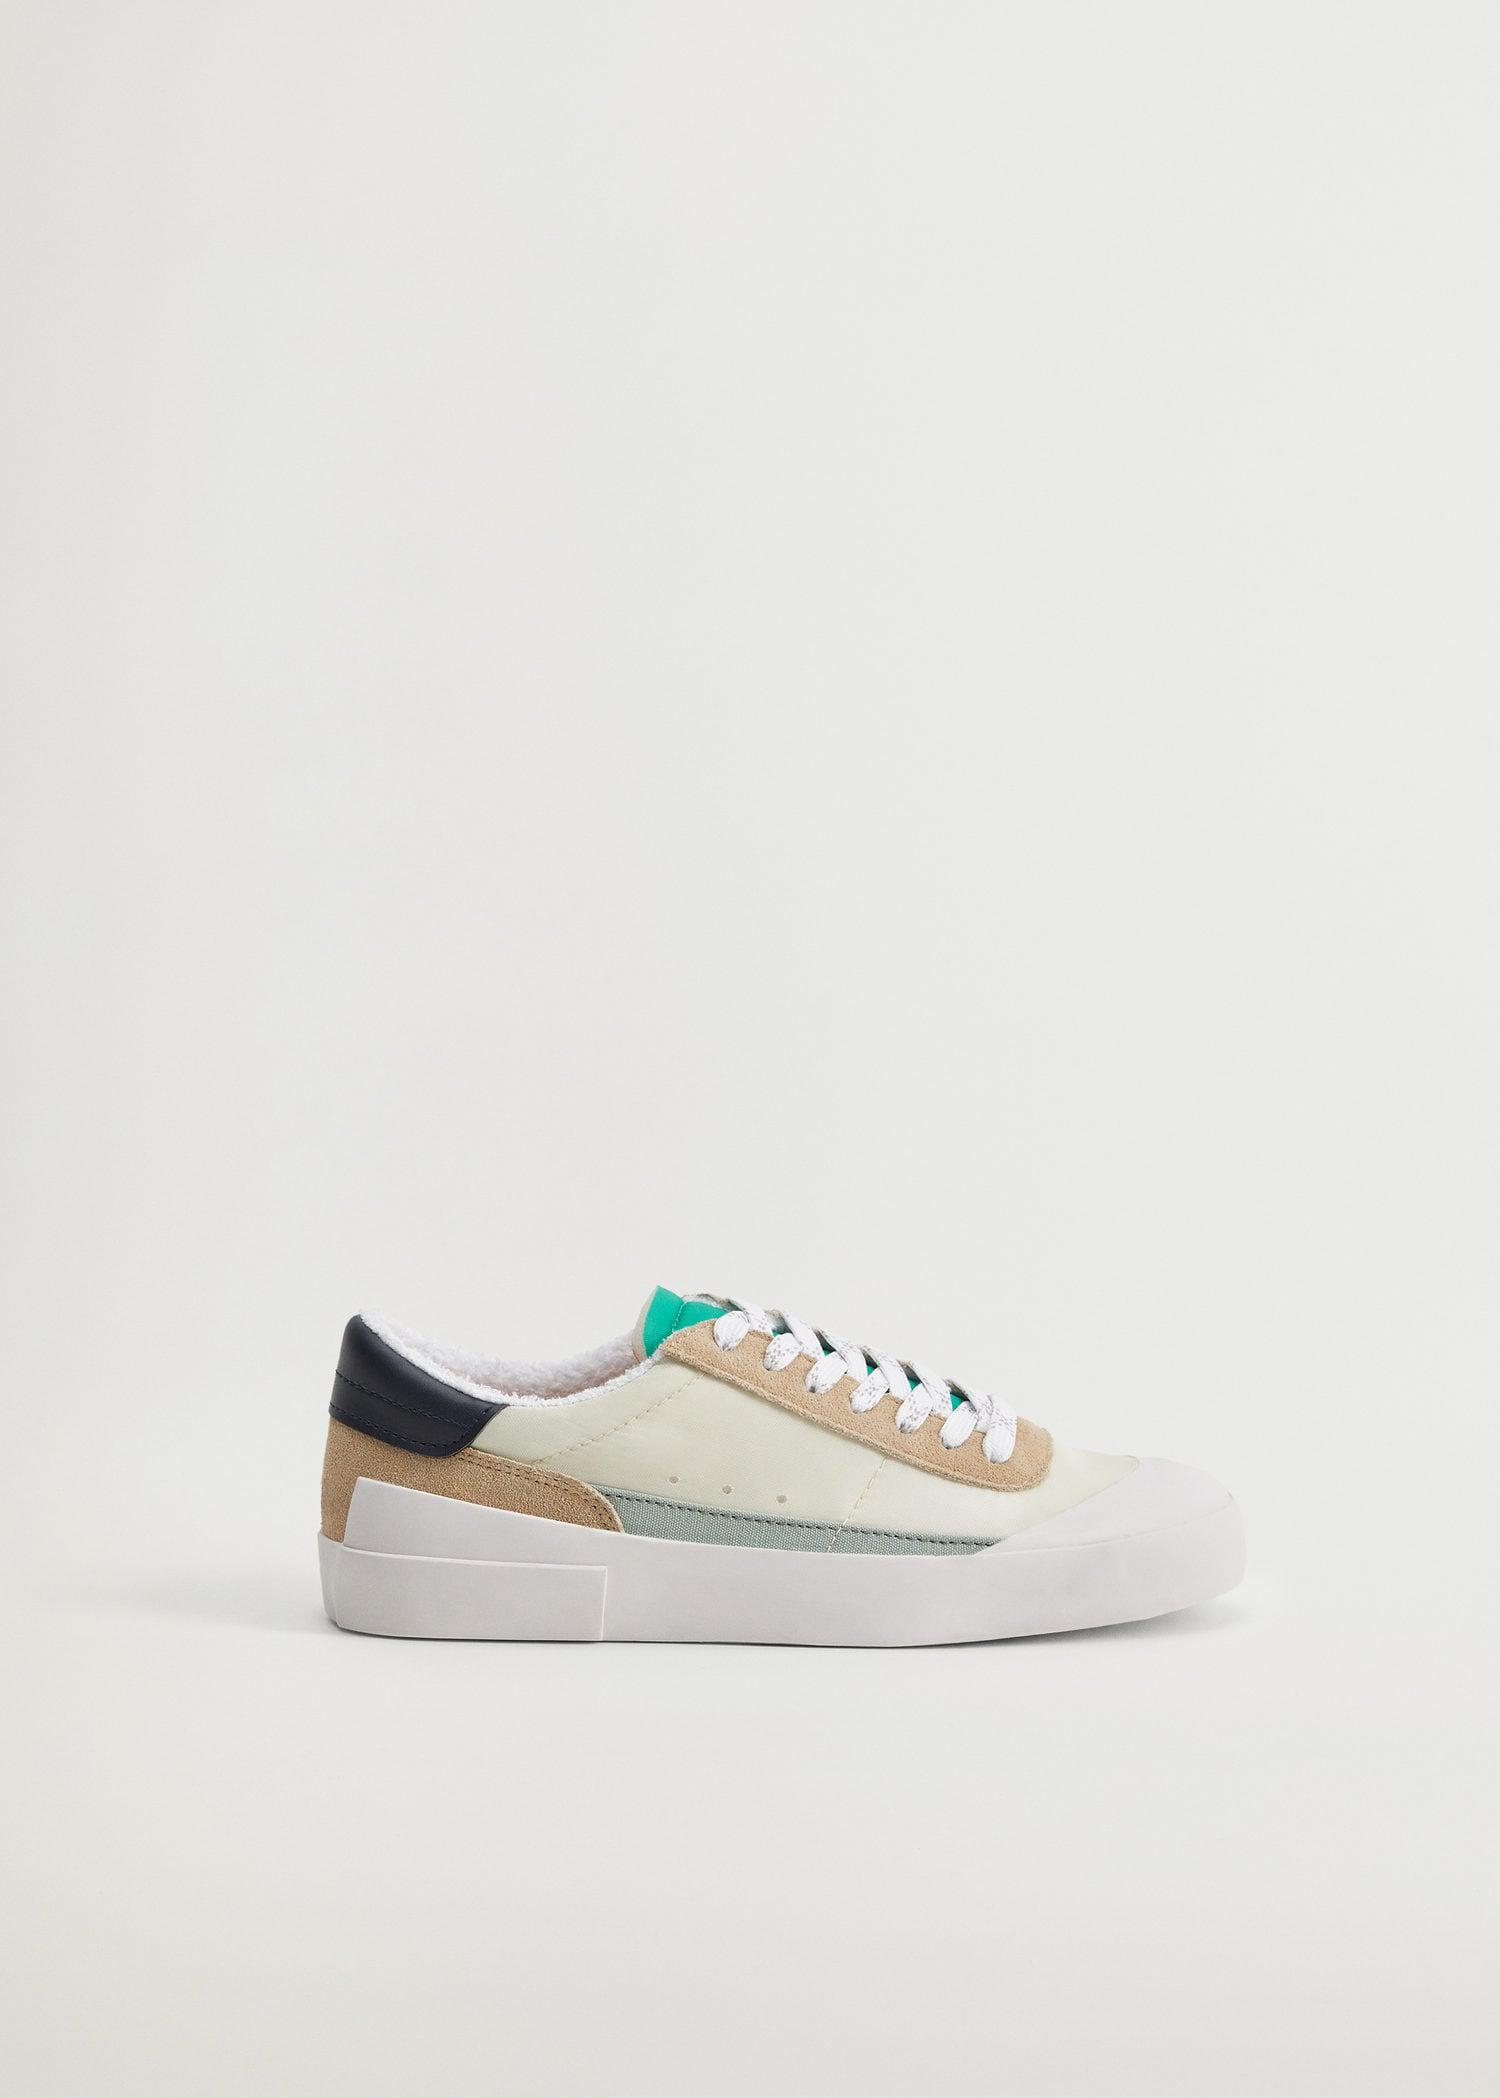 Sustainable leather sneakers